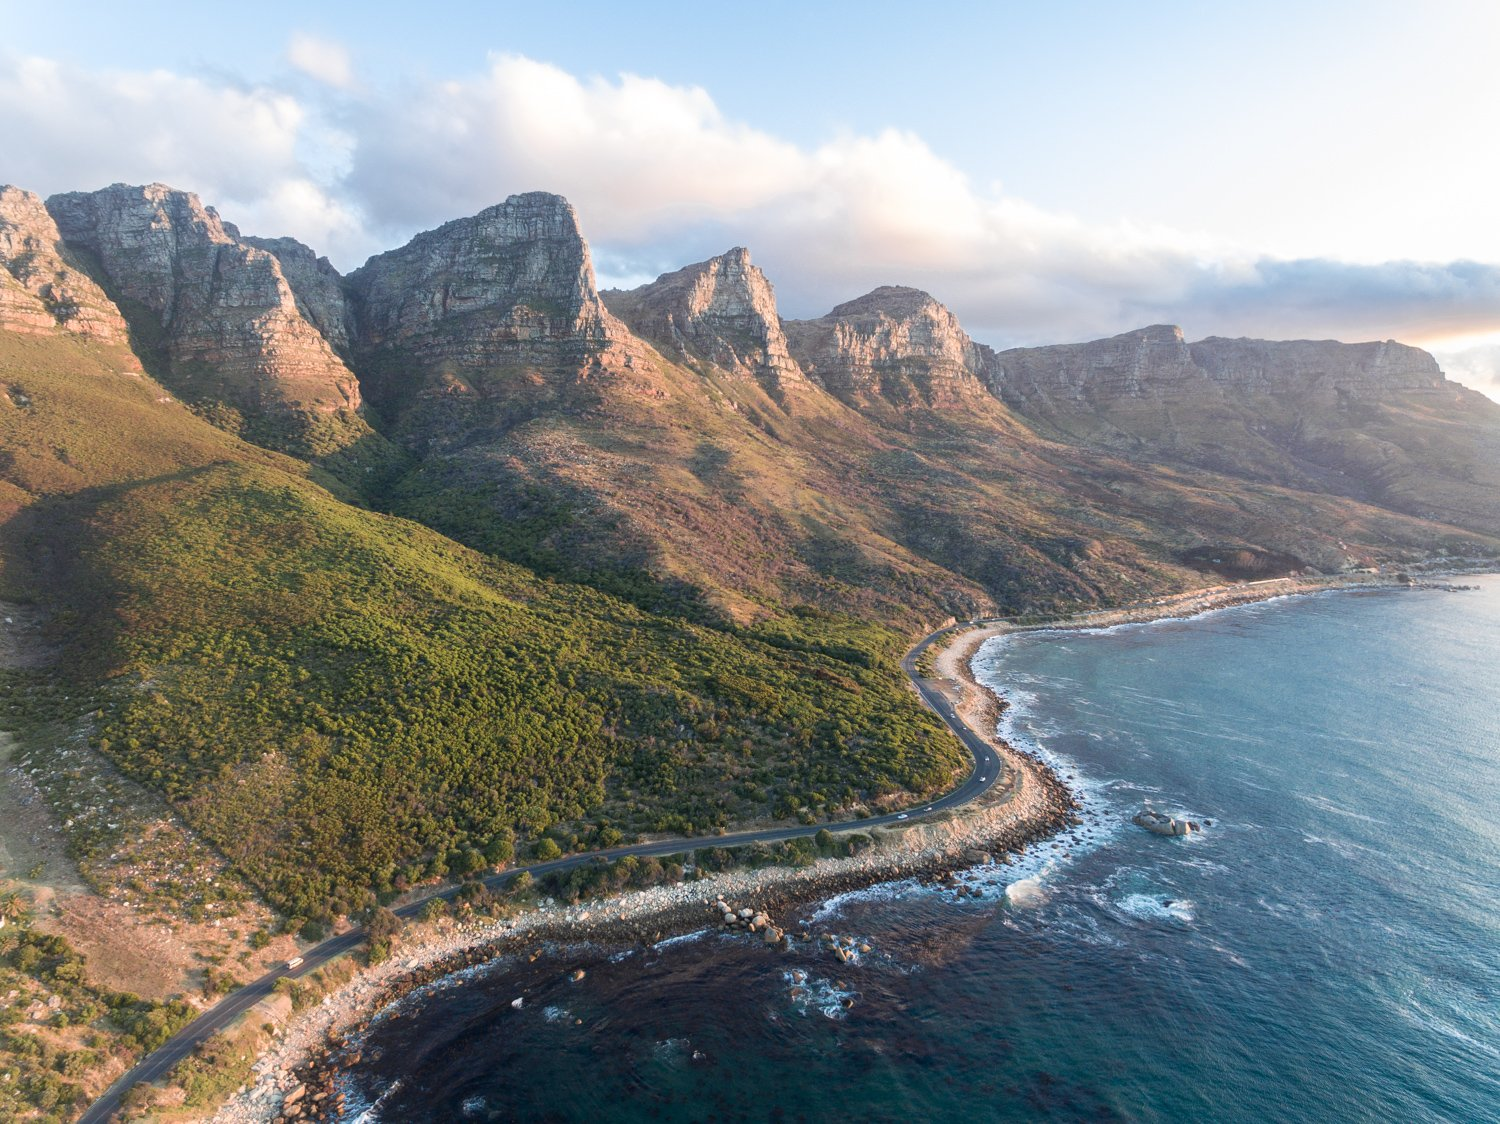 Scenic road along the twelve apostles mountains in cape town during sunset